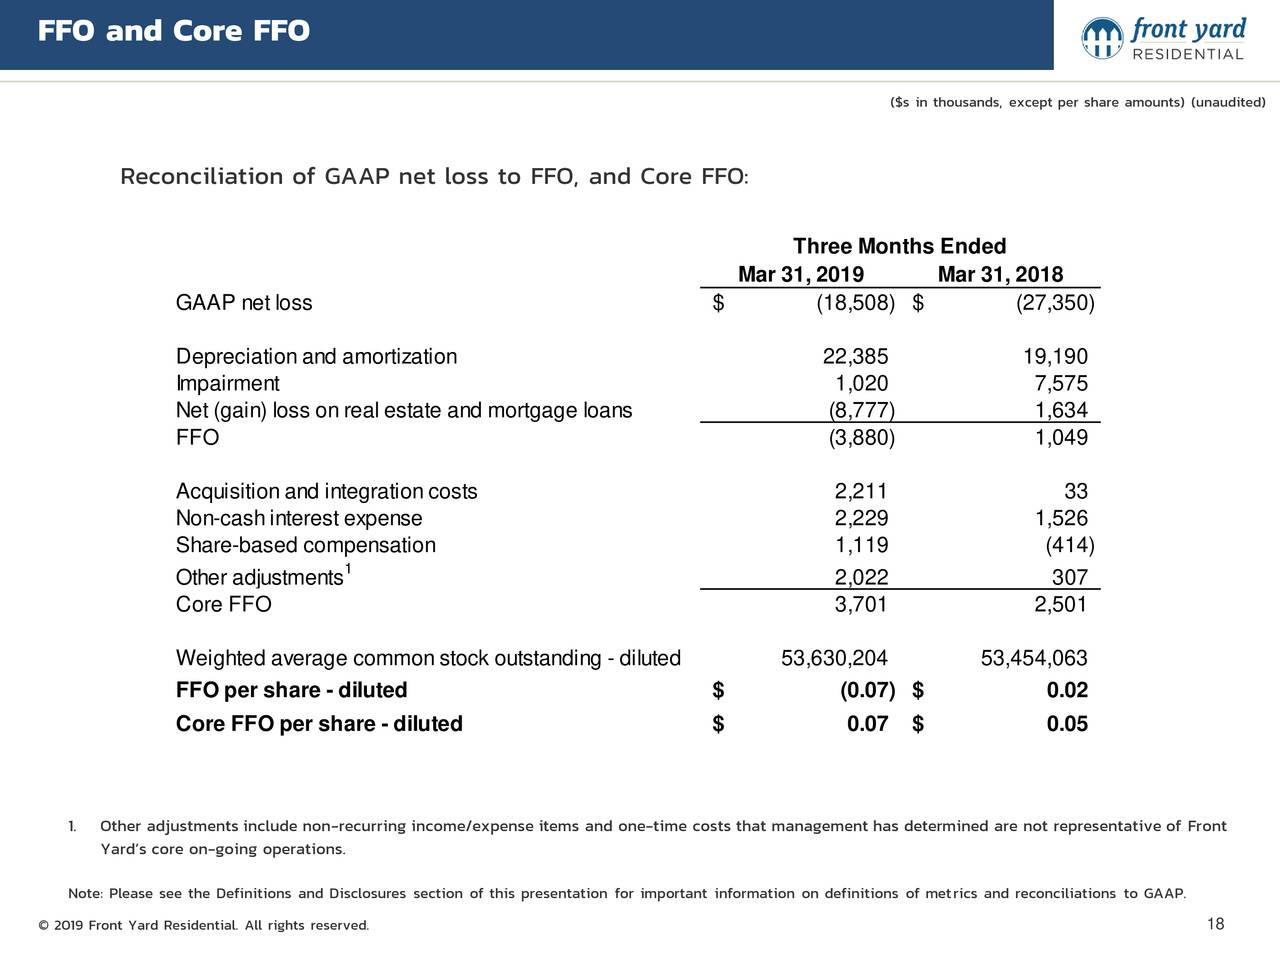 ($s in thousands, except per share amounts) (unaudited) Reconciliation of GAAP net loss to FFO, and Core FFO: Three Months Ended Mar 31, 2019 Mar 31, 2018 GAAP net loss $ (18,508) $ (27,350) Depreciationand amortization 22,385 19,190 Impairment 1,020 7,575 Net (gain) loss onreal estate and mortgage loans (8,777) 1,634 FFO (3,880) 1,049 Acquisitionand integrationcosts 2,211 33 Non-cashinterest expense 2,229 1,526 Share-based compensation 1,119 (414) 1 Other adjustments 2,022 307 Core FFO 3,701 2,501 Weighted average commonstock outstanding - diluted 53,630,204 53,454,063 FFO per share - diluted $ (0.07) $ 0.02 Core FFO per share - diluted $ 0.07 $ 0.05 1. Other adjustments include non-recurring income/expense items and one-time costs that management has determined are not representative of Front Yard's core on-going operations. Note: Please see the Definitions and Disclosures section of this presentation for important information on definitions of metrics and reconciliations to GAAP. © 2019 Front Yard Residential. All rights reserved. 18